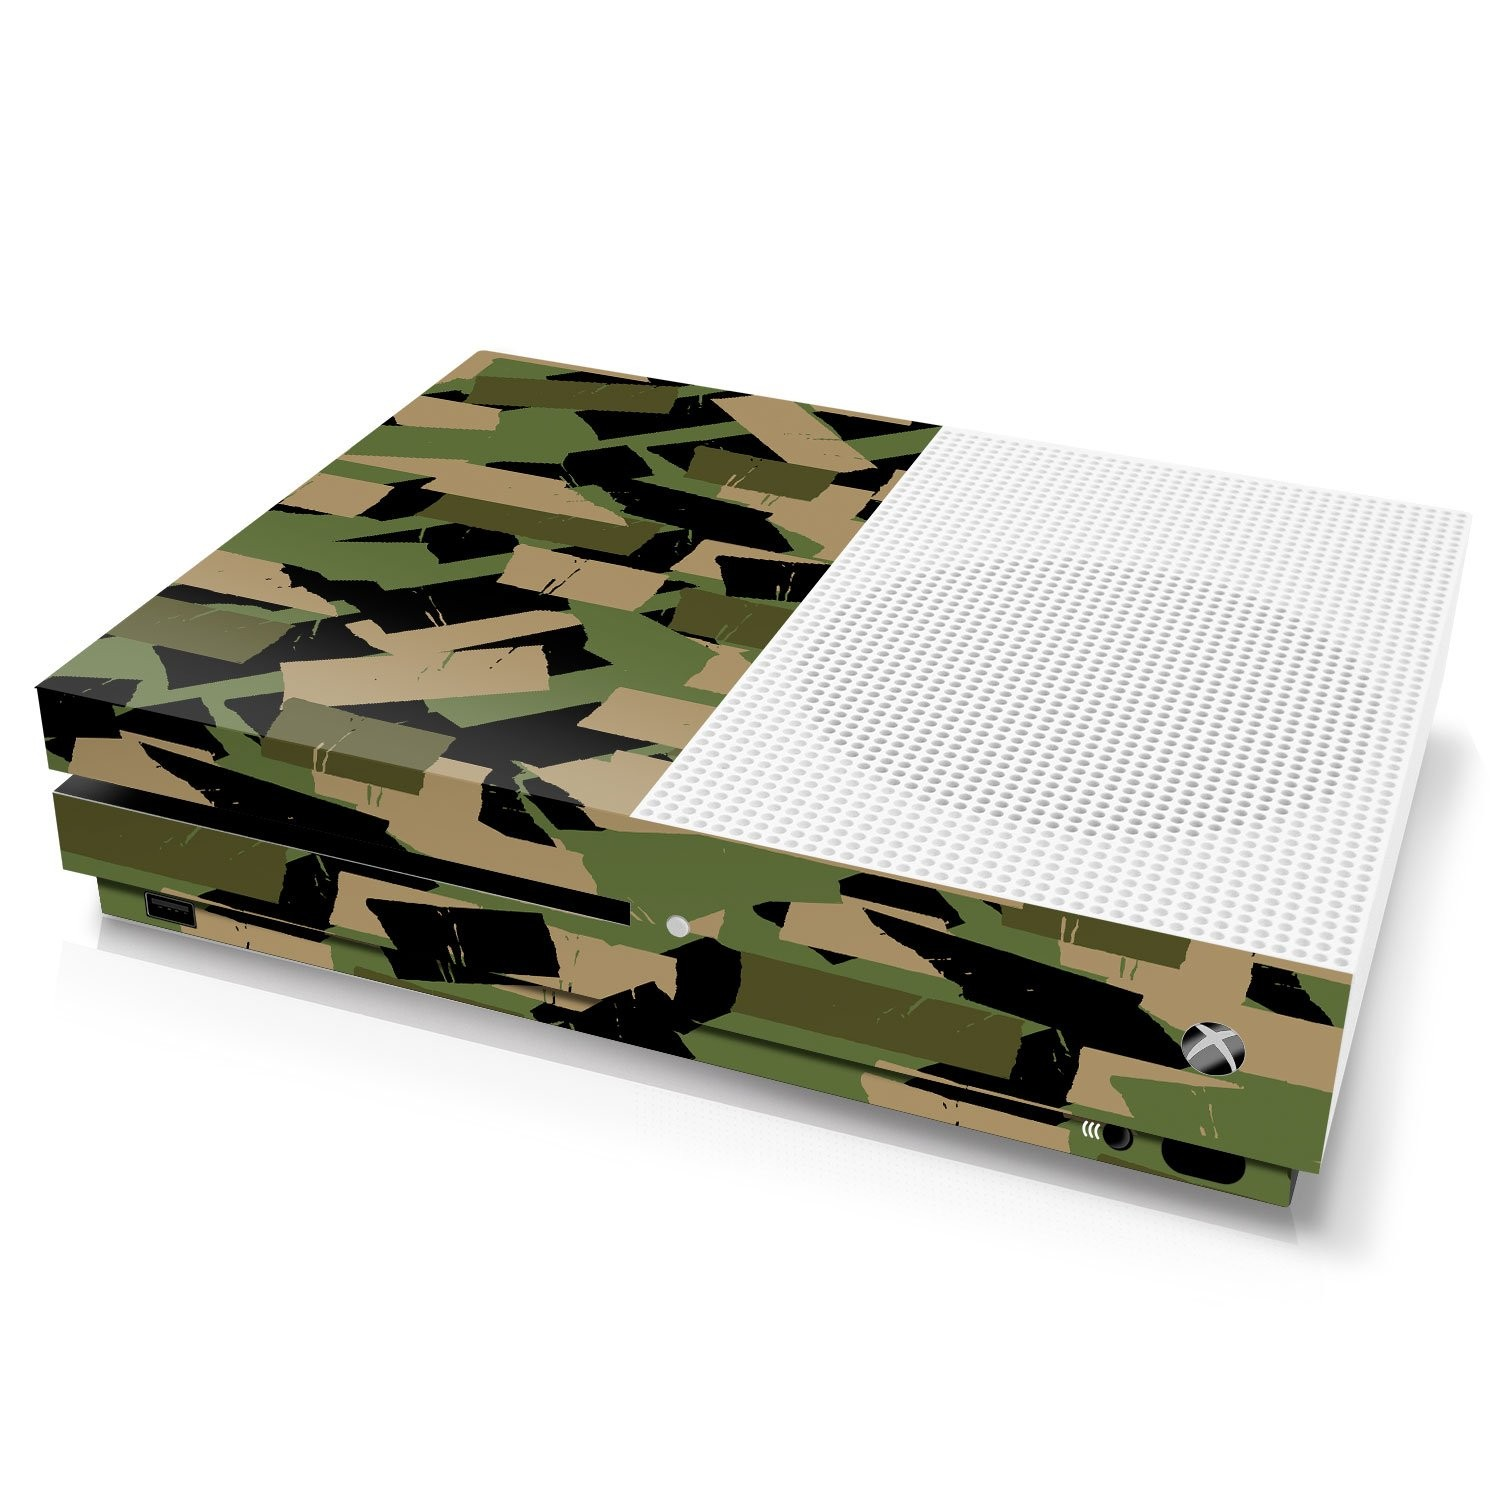 Xbox One S Console Skin - Camouflage: Forest Torn Tape - Officially Licensed by Xbox